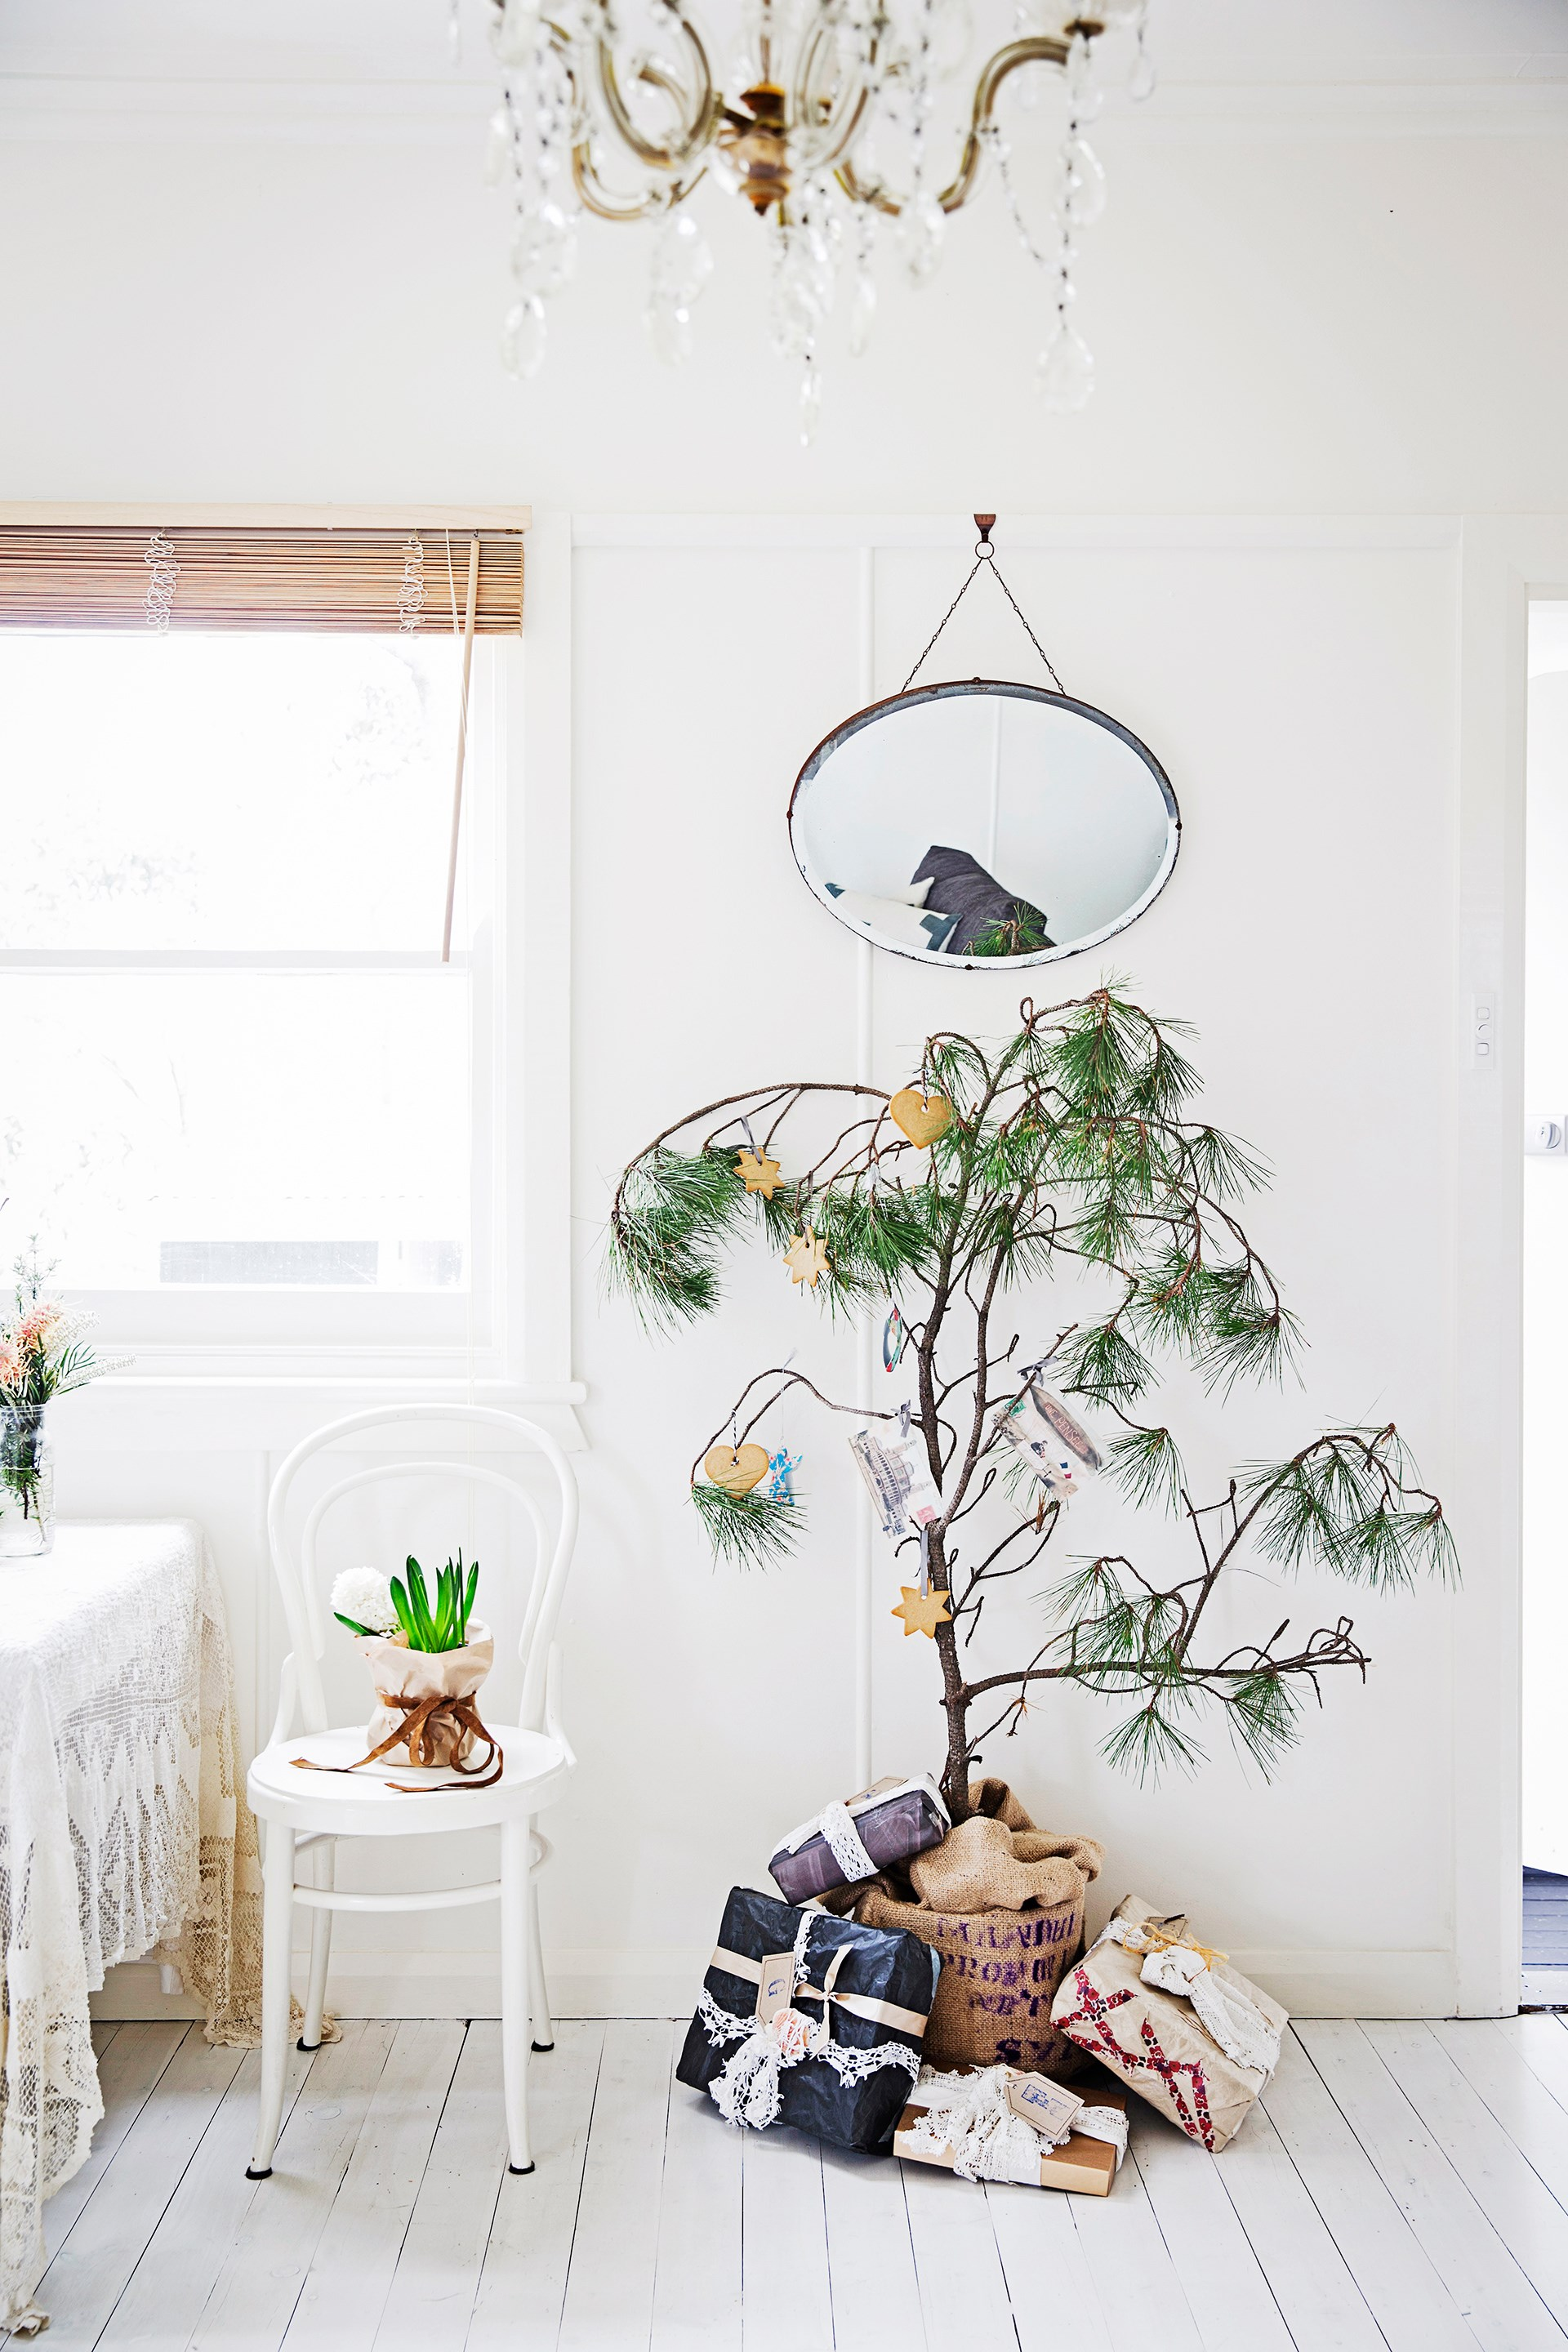 """Work with your existing style when decorating for Christmas. A single tree branch looks effective against the bright white walls and floors of this [beach house on the South Coast of NSW](http://www.homestolove.com.au/gallery-beth-and-warrens-idyllic-beach-house-renovation-2529